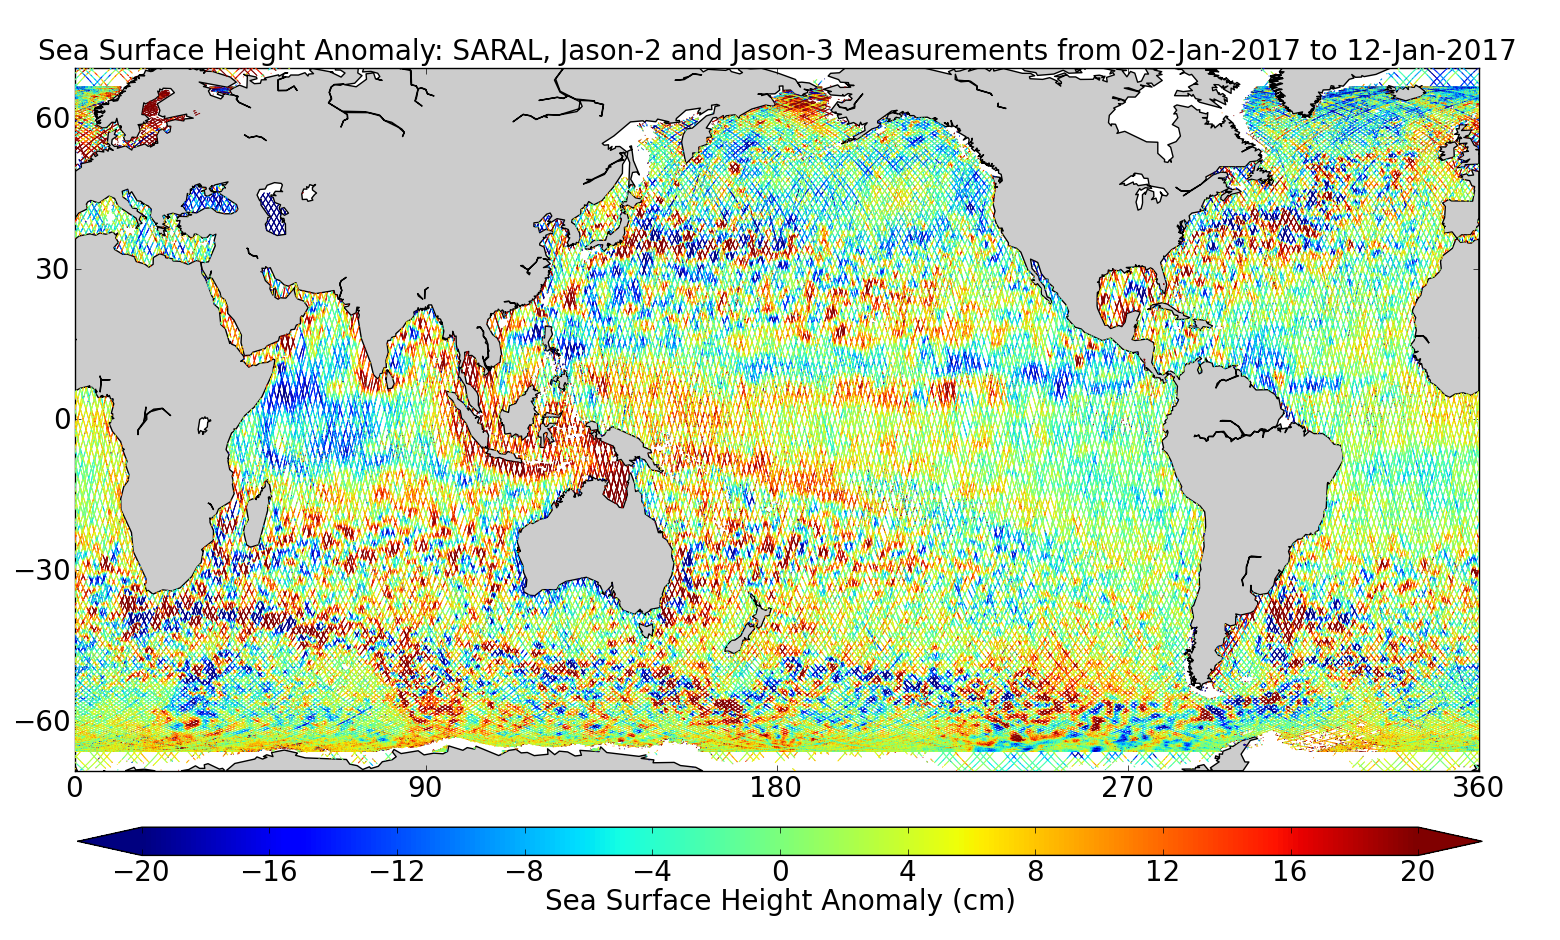 Sea Surface Height Anomaly: SARAL, Jason-2 and Jason-3 Measurements from 02-Jan-2017 to 12-Jan-2017